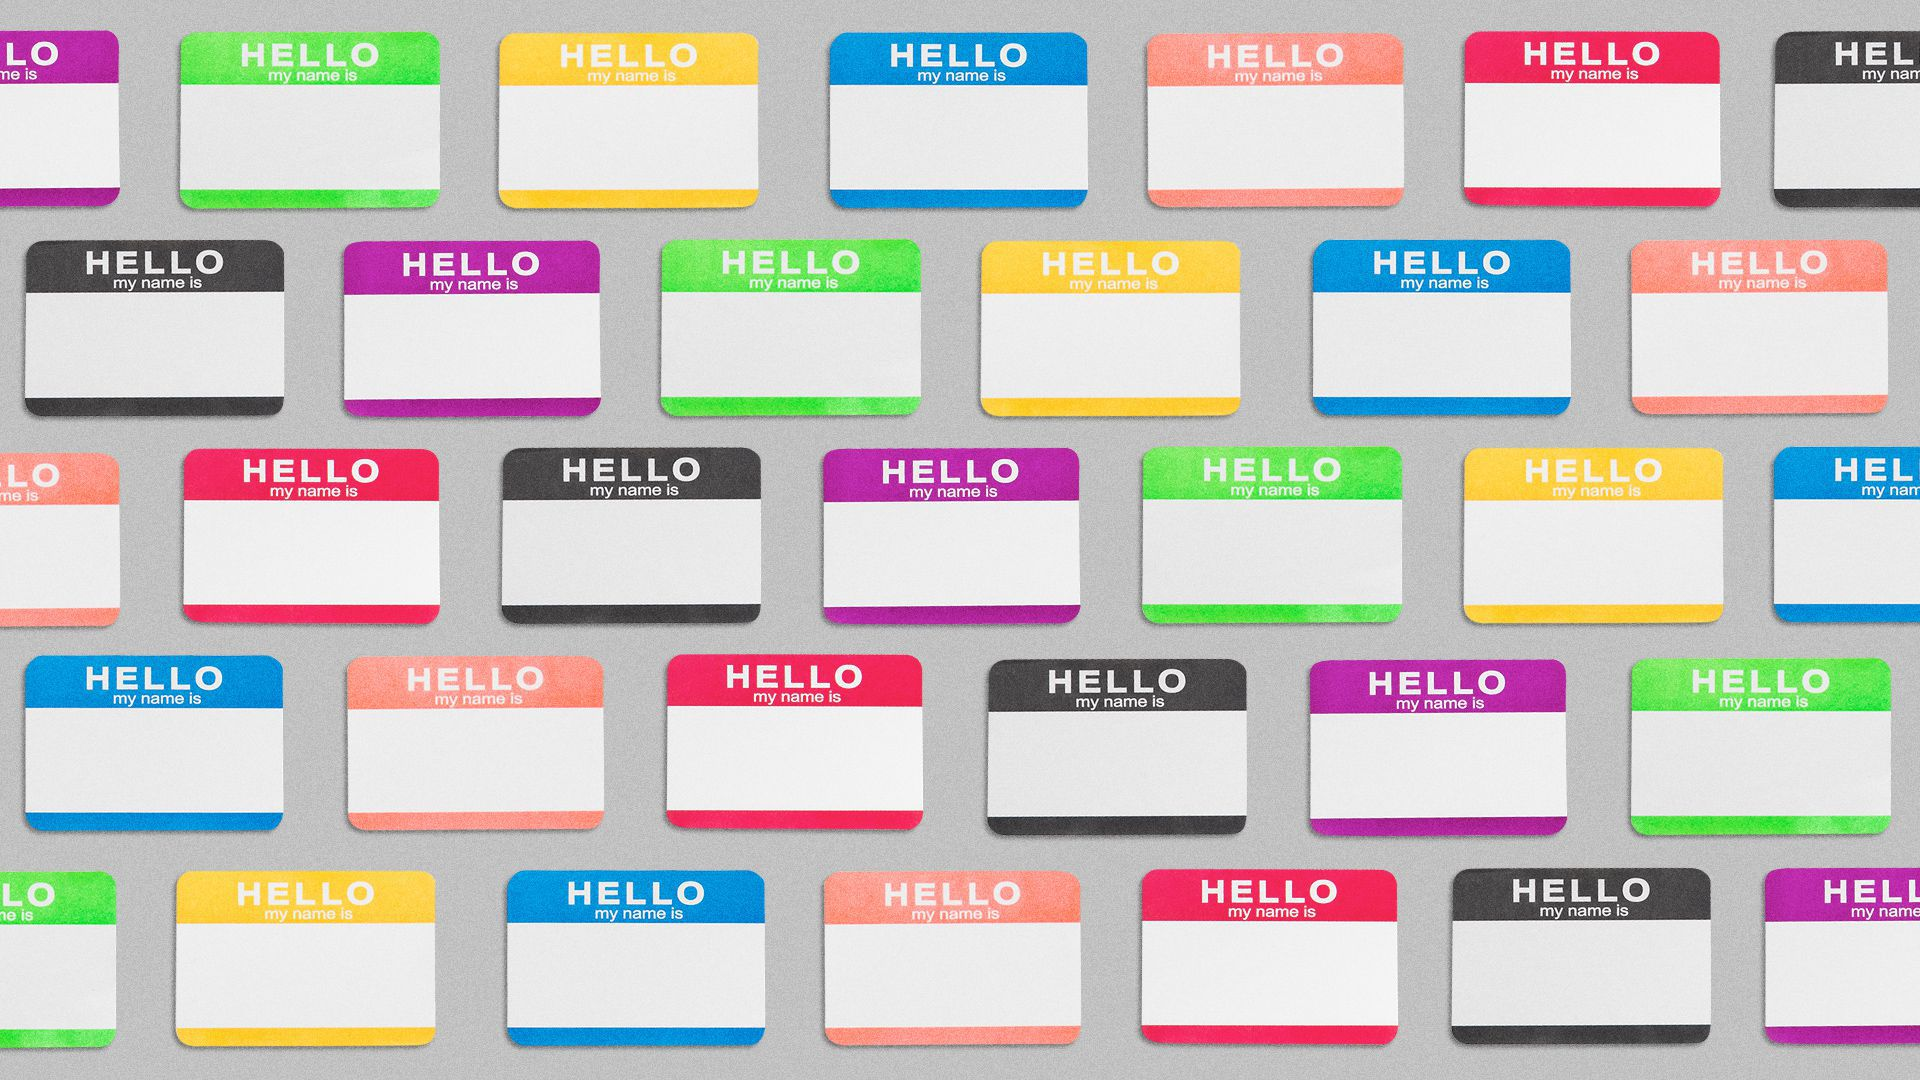 Illustration of a pattern of name tags in different colors.